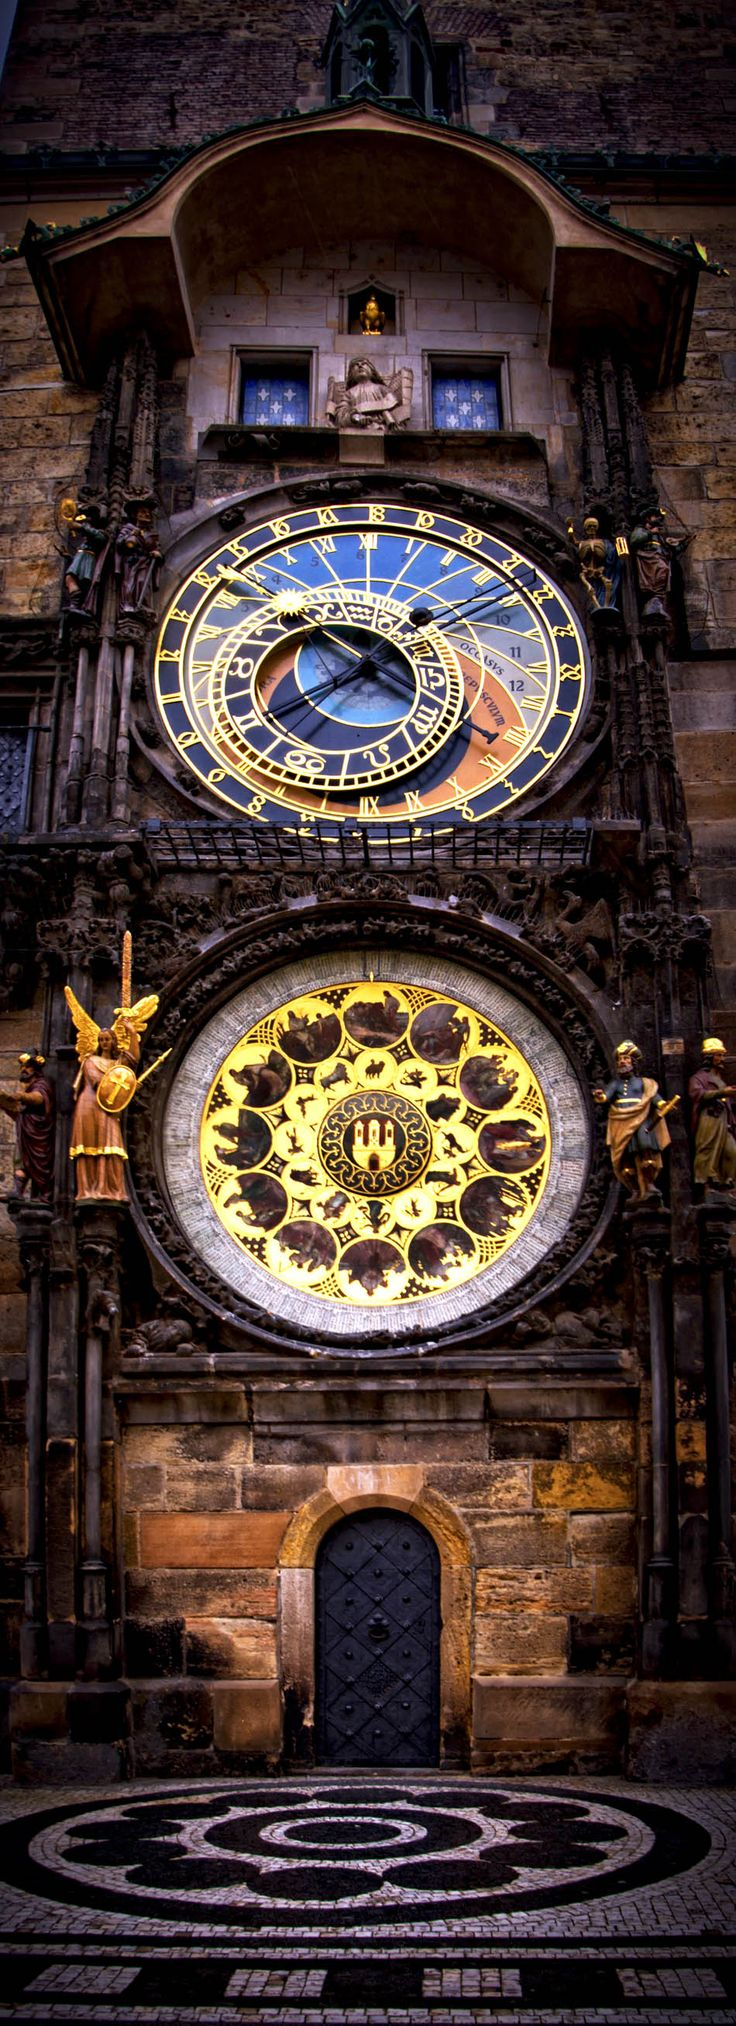 The Prague Astronomical Clock or Prague Orloj. The Orloj is mounted on the southern wall of Old Town City Hall in the Old Town Square and is a popular tourist attraction. Czech Republic. | 22 Reasons why Czech Republic must be in the Top of your Bucket List